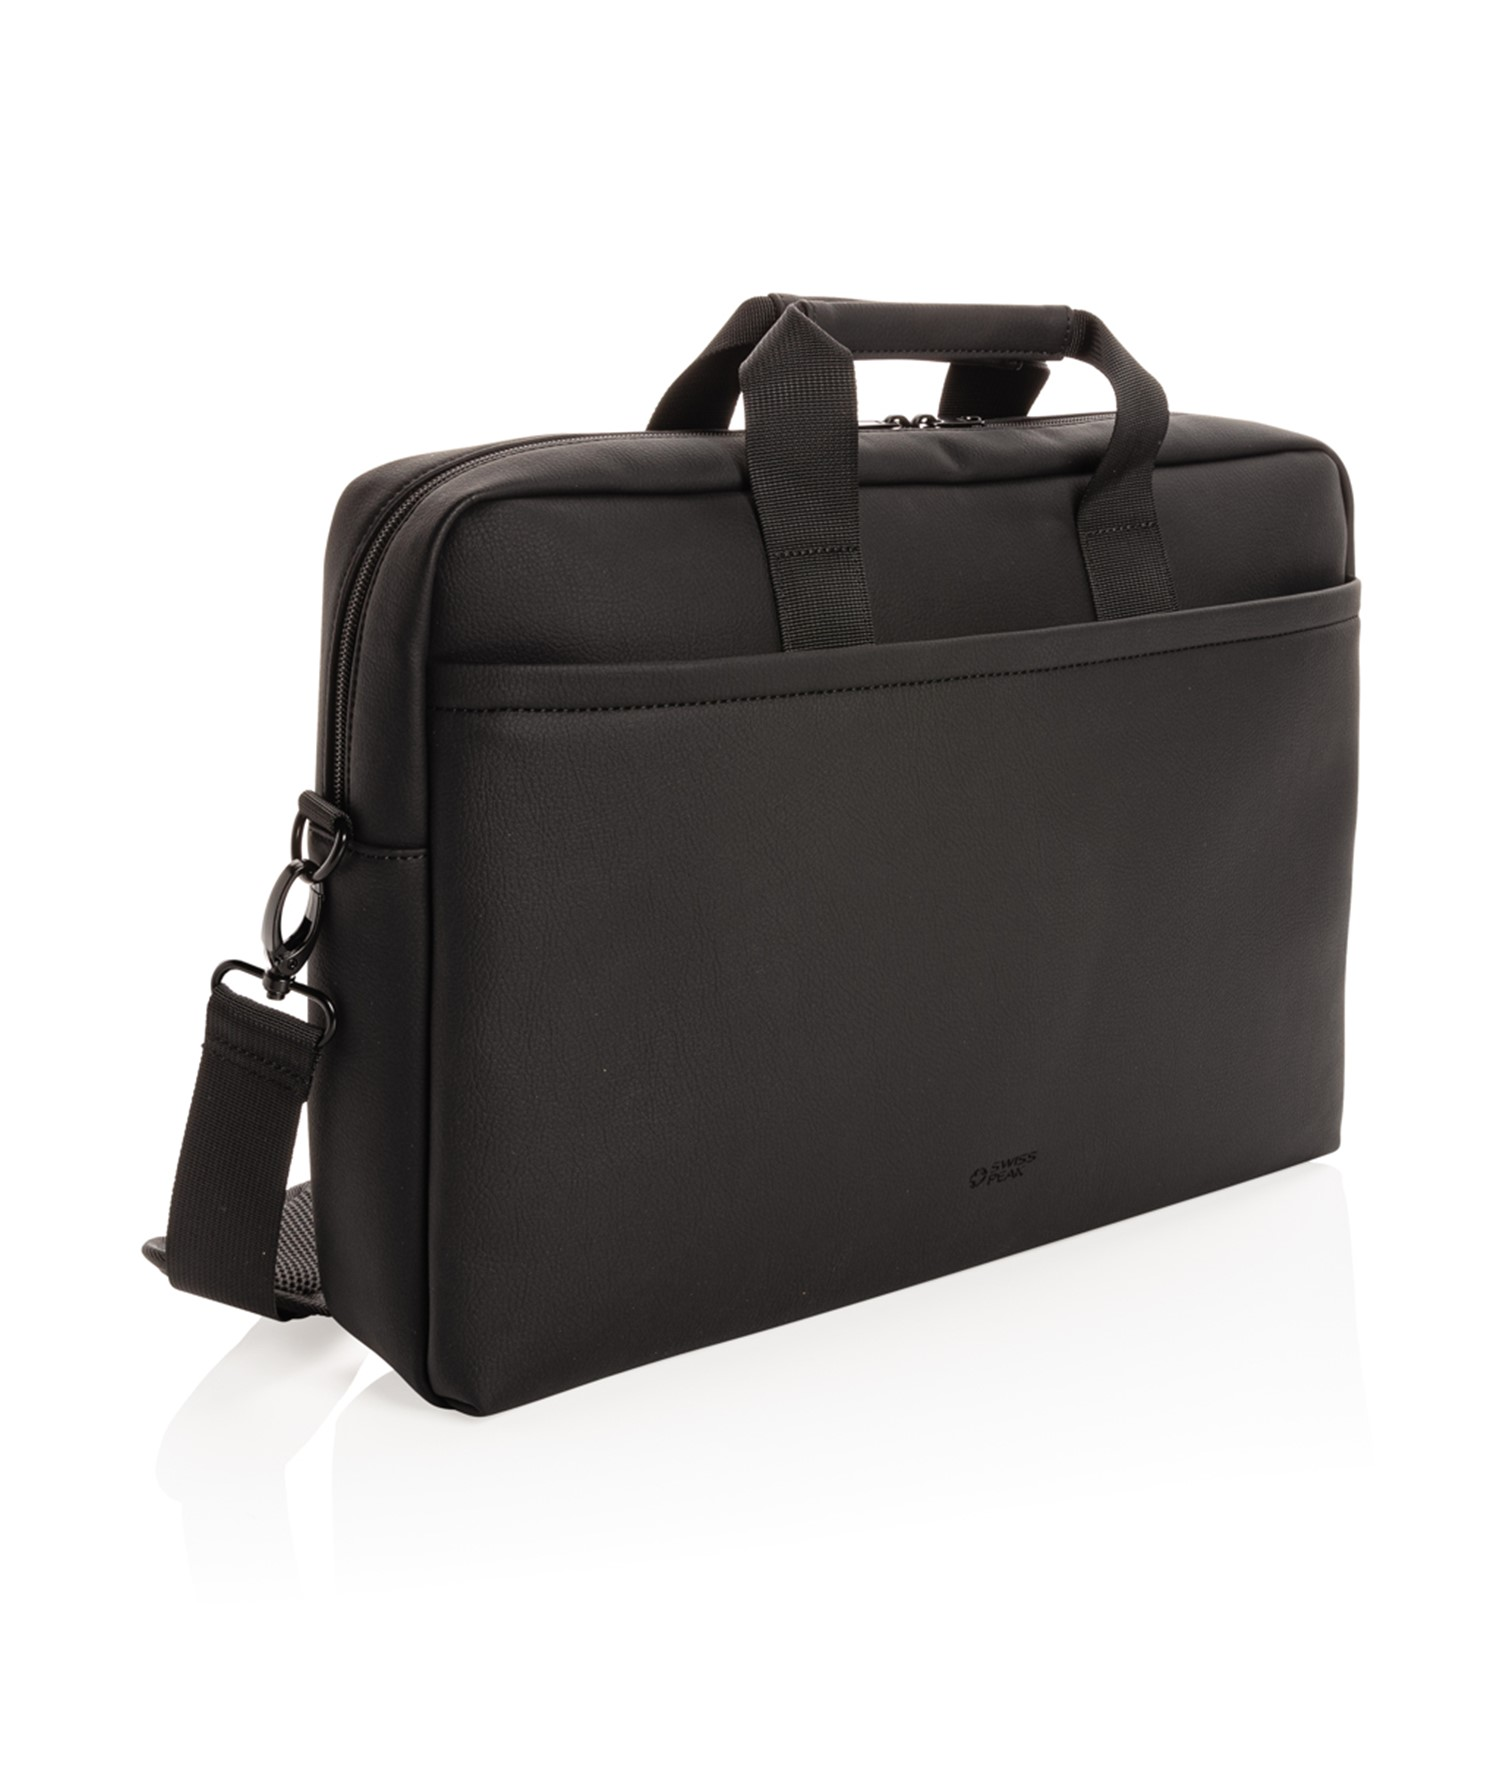 SWISS PEAK DELUXE VEGAN LEATHER LAPTOP BAG PVC FREE